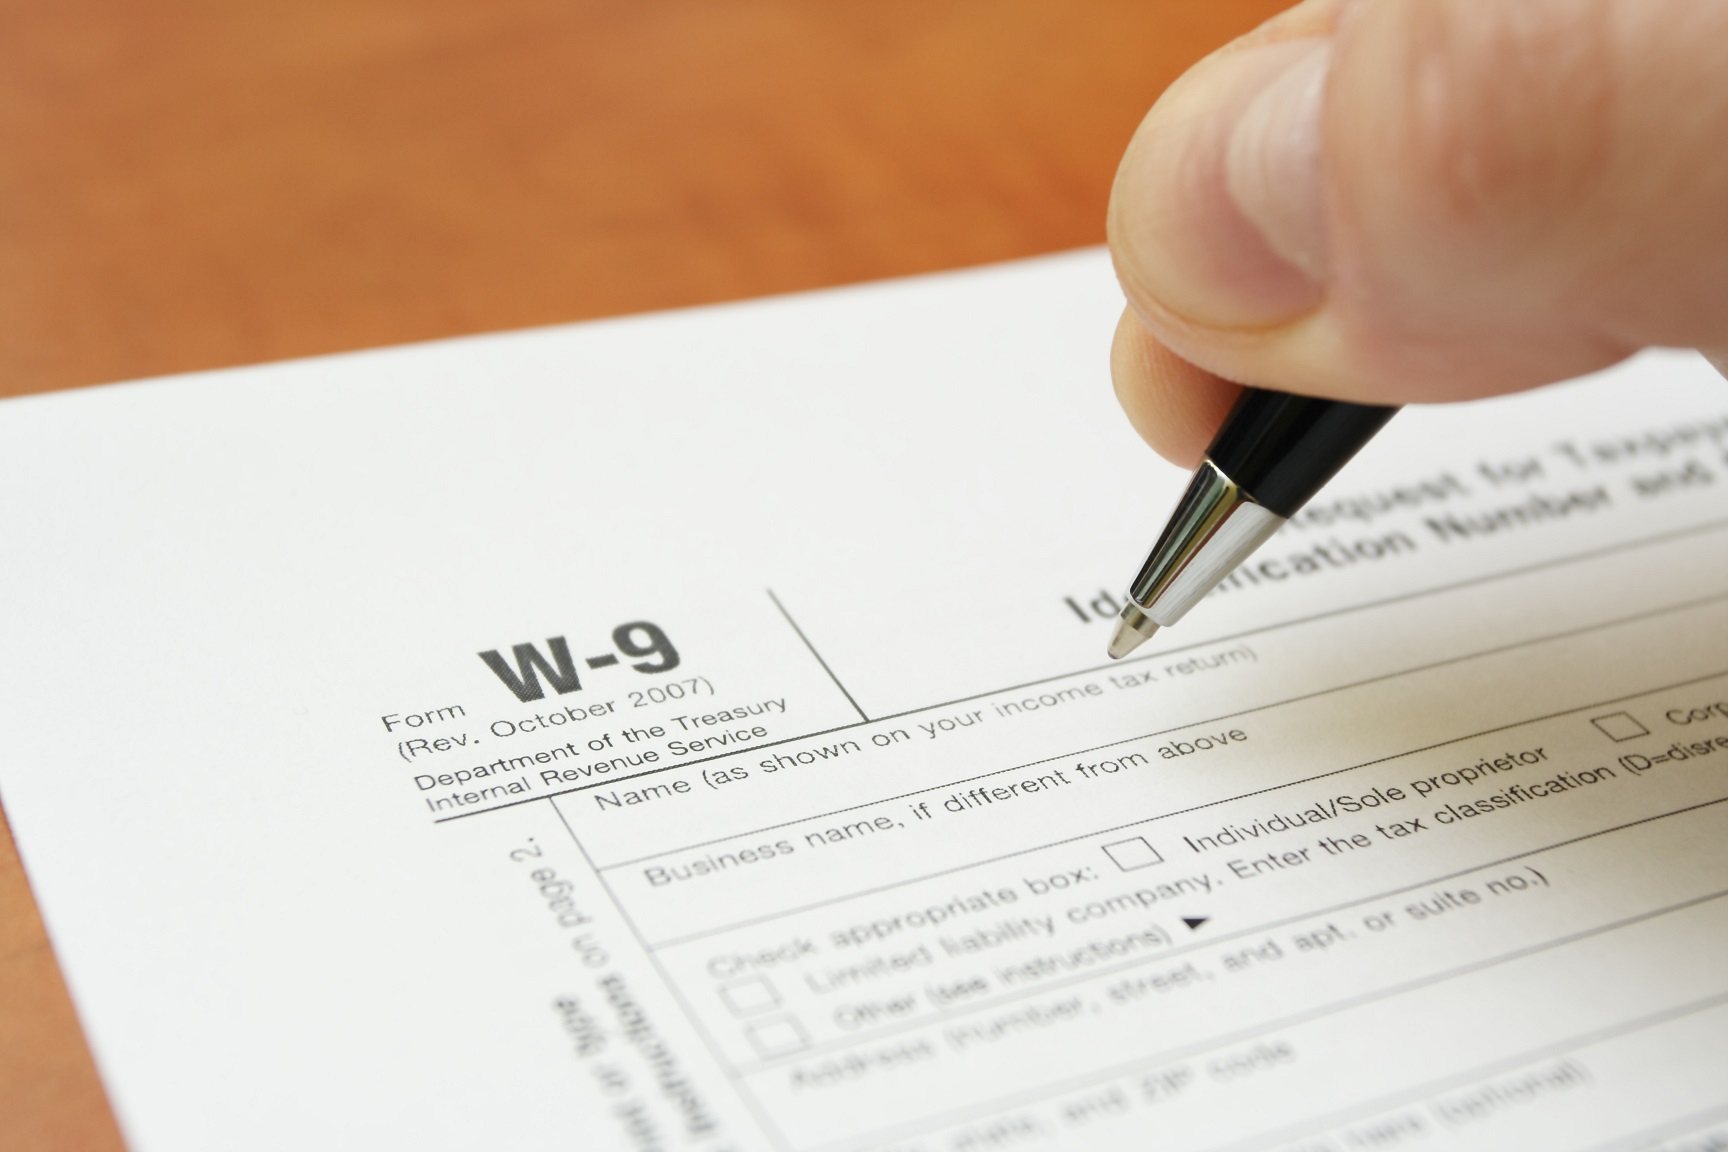 What Is A W-9 Tax Form? | H&R Block intended for W-9 Form 2021